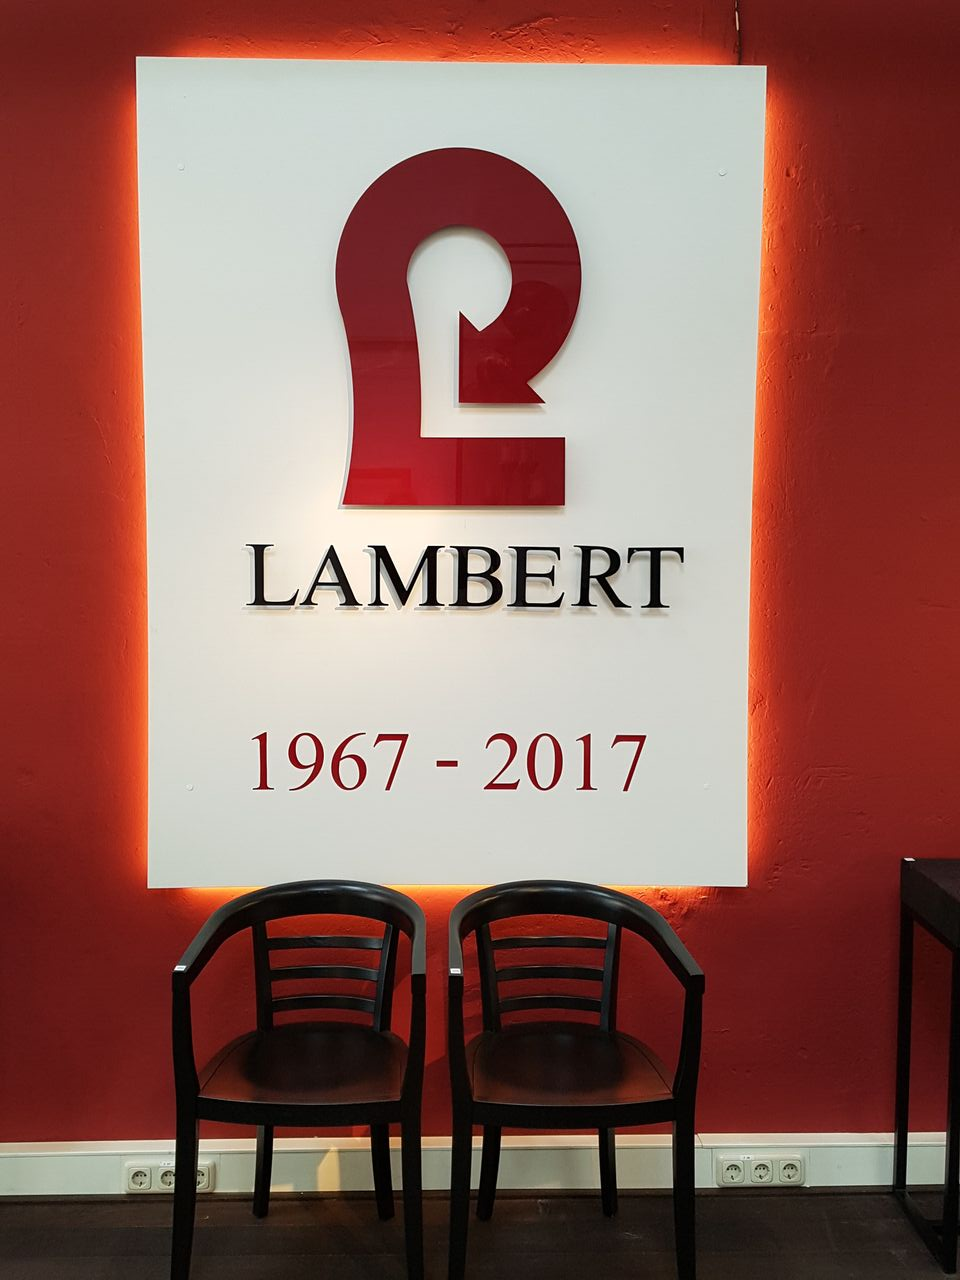 50 jahre lambert julius logo lambert m bel shop exklusives wohndesign. Black Bedroom Furniture Sets. Home Design Ideas